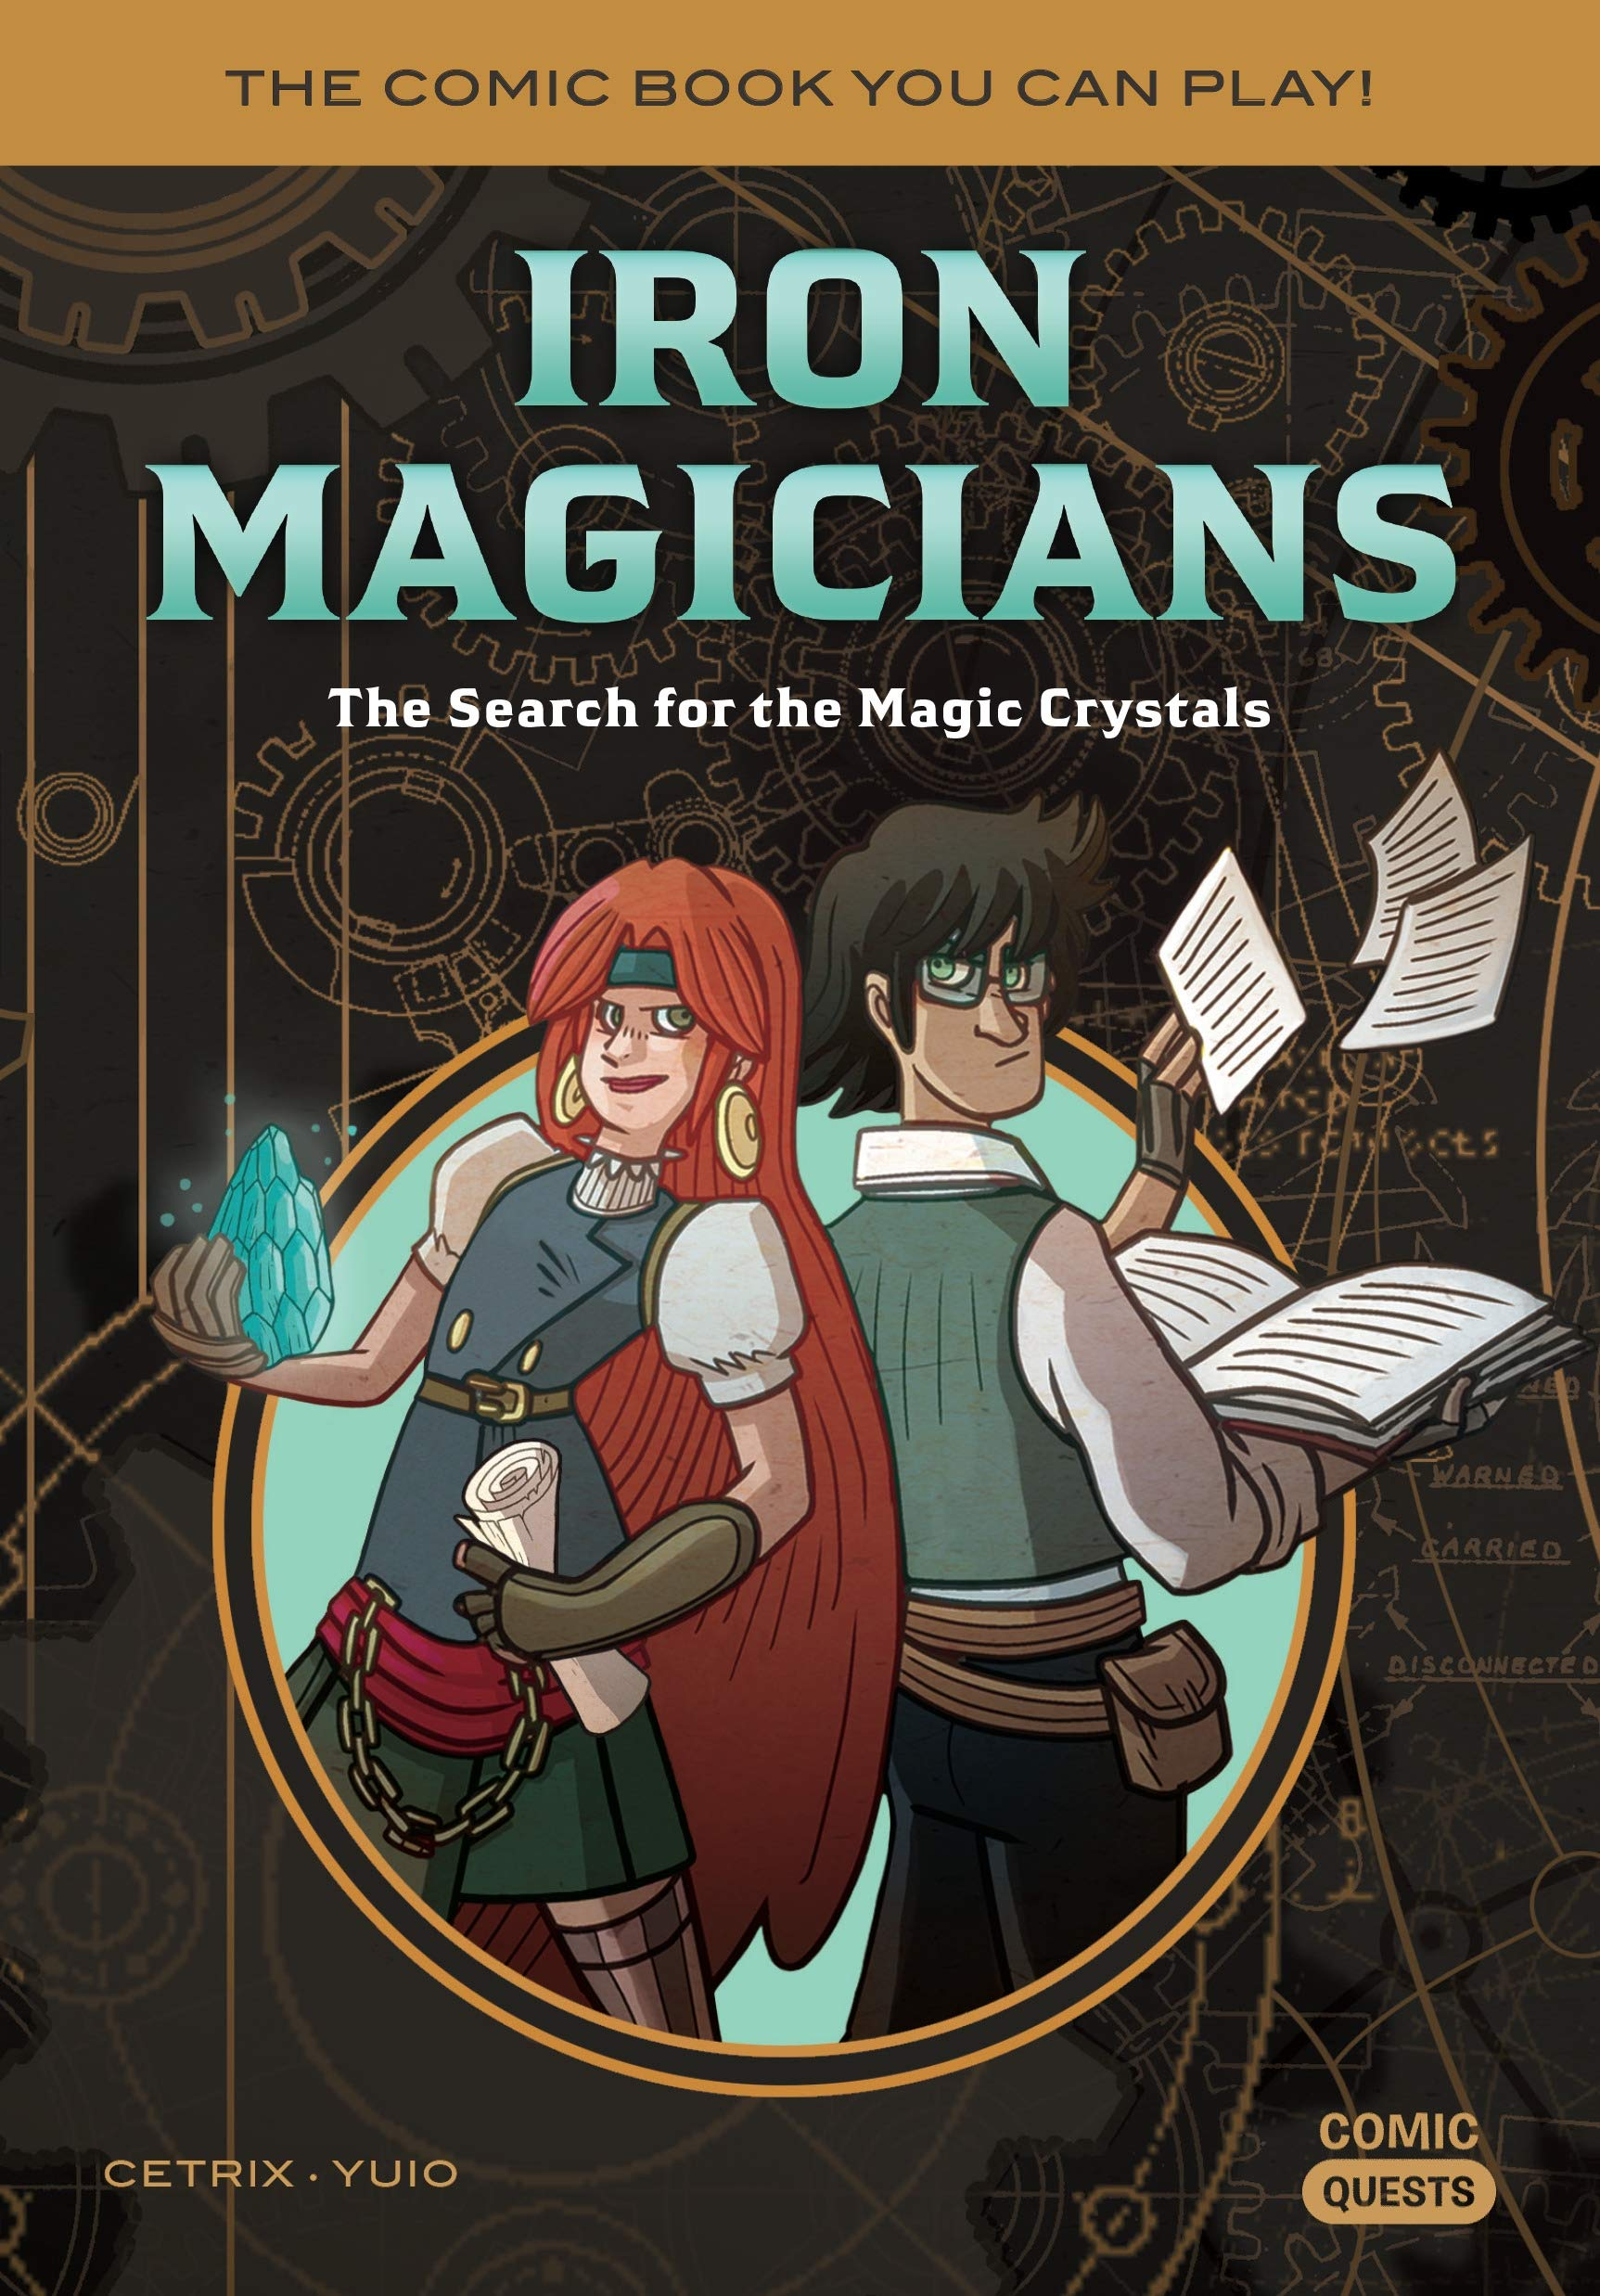 Comic Quests - Kids books you can play - iron magicians.jpg